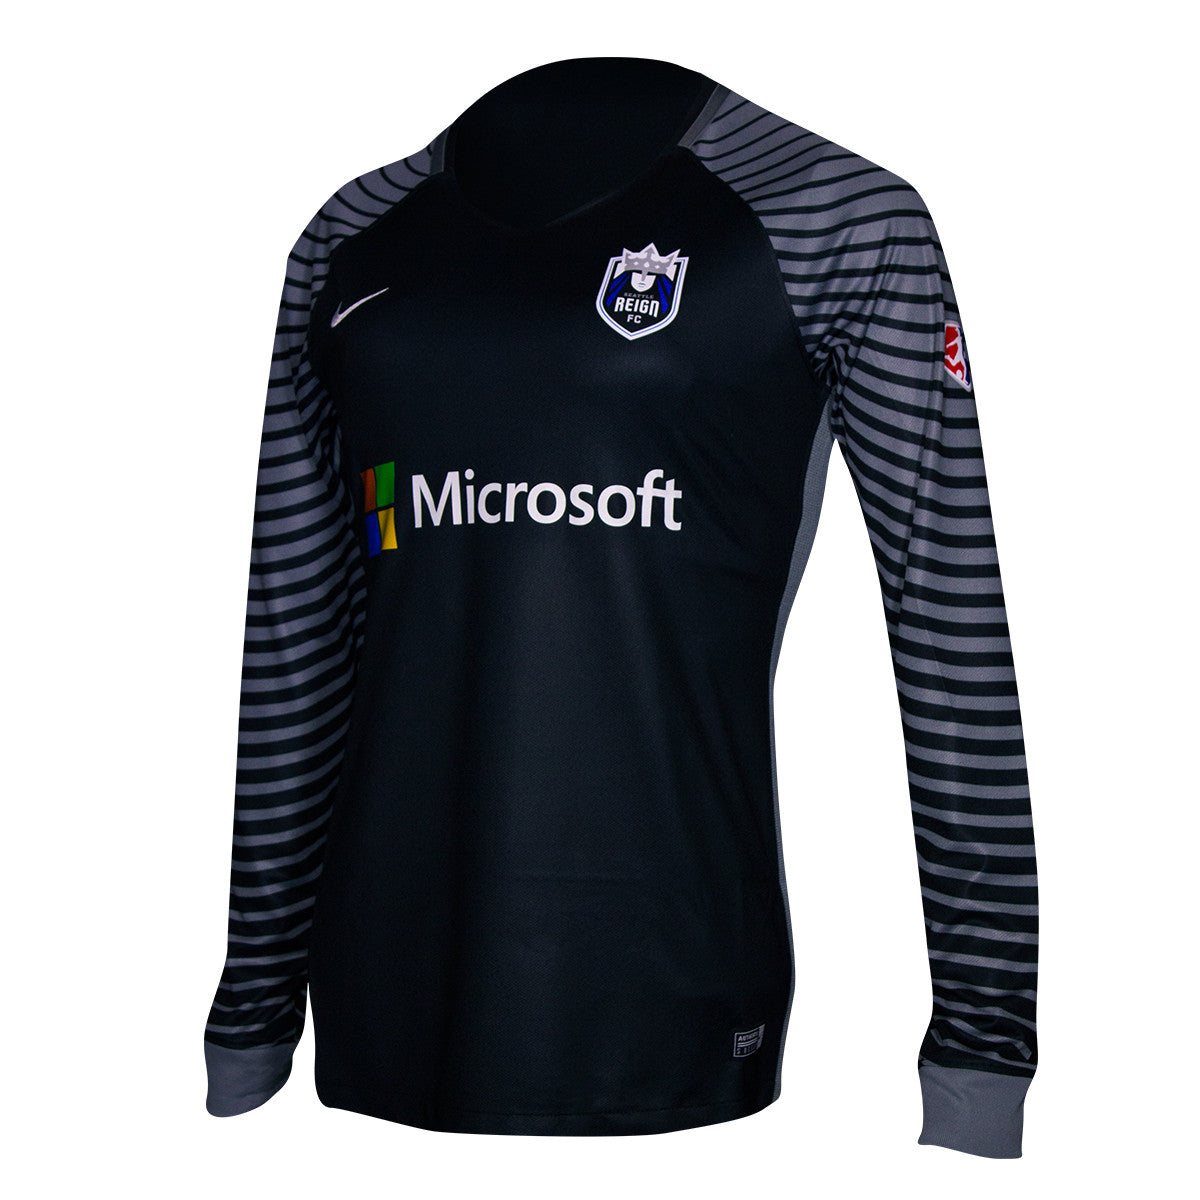 de9777a946c Women's Authentic 2017 Goalkeeper Jersey - Reign FC